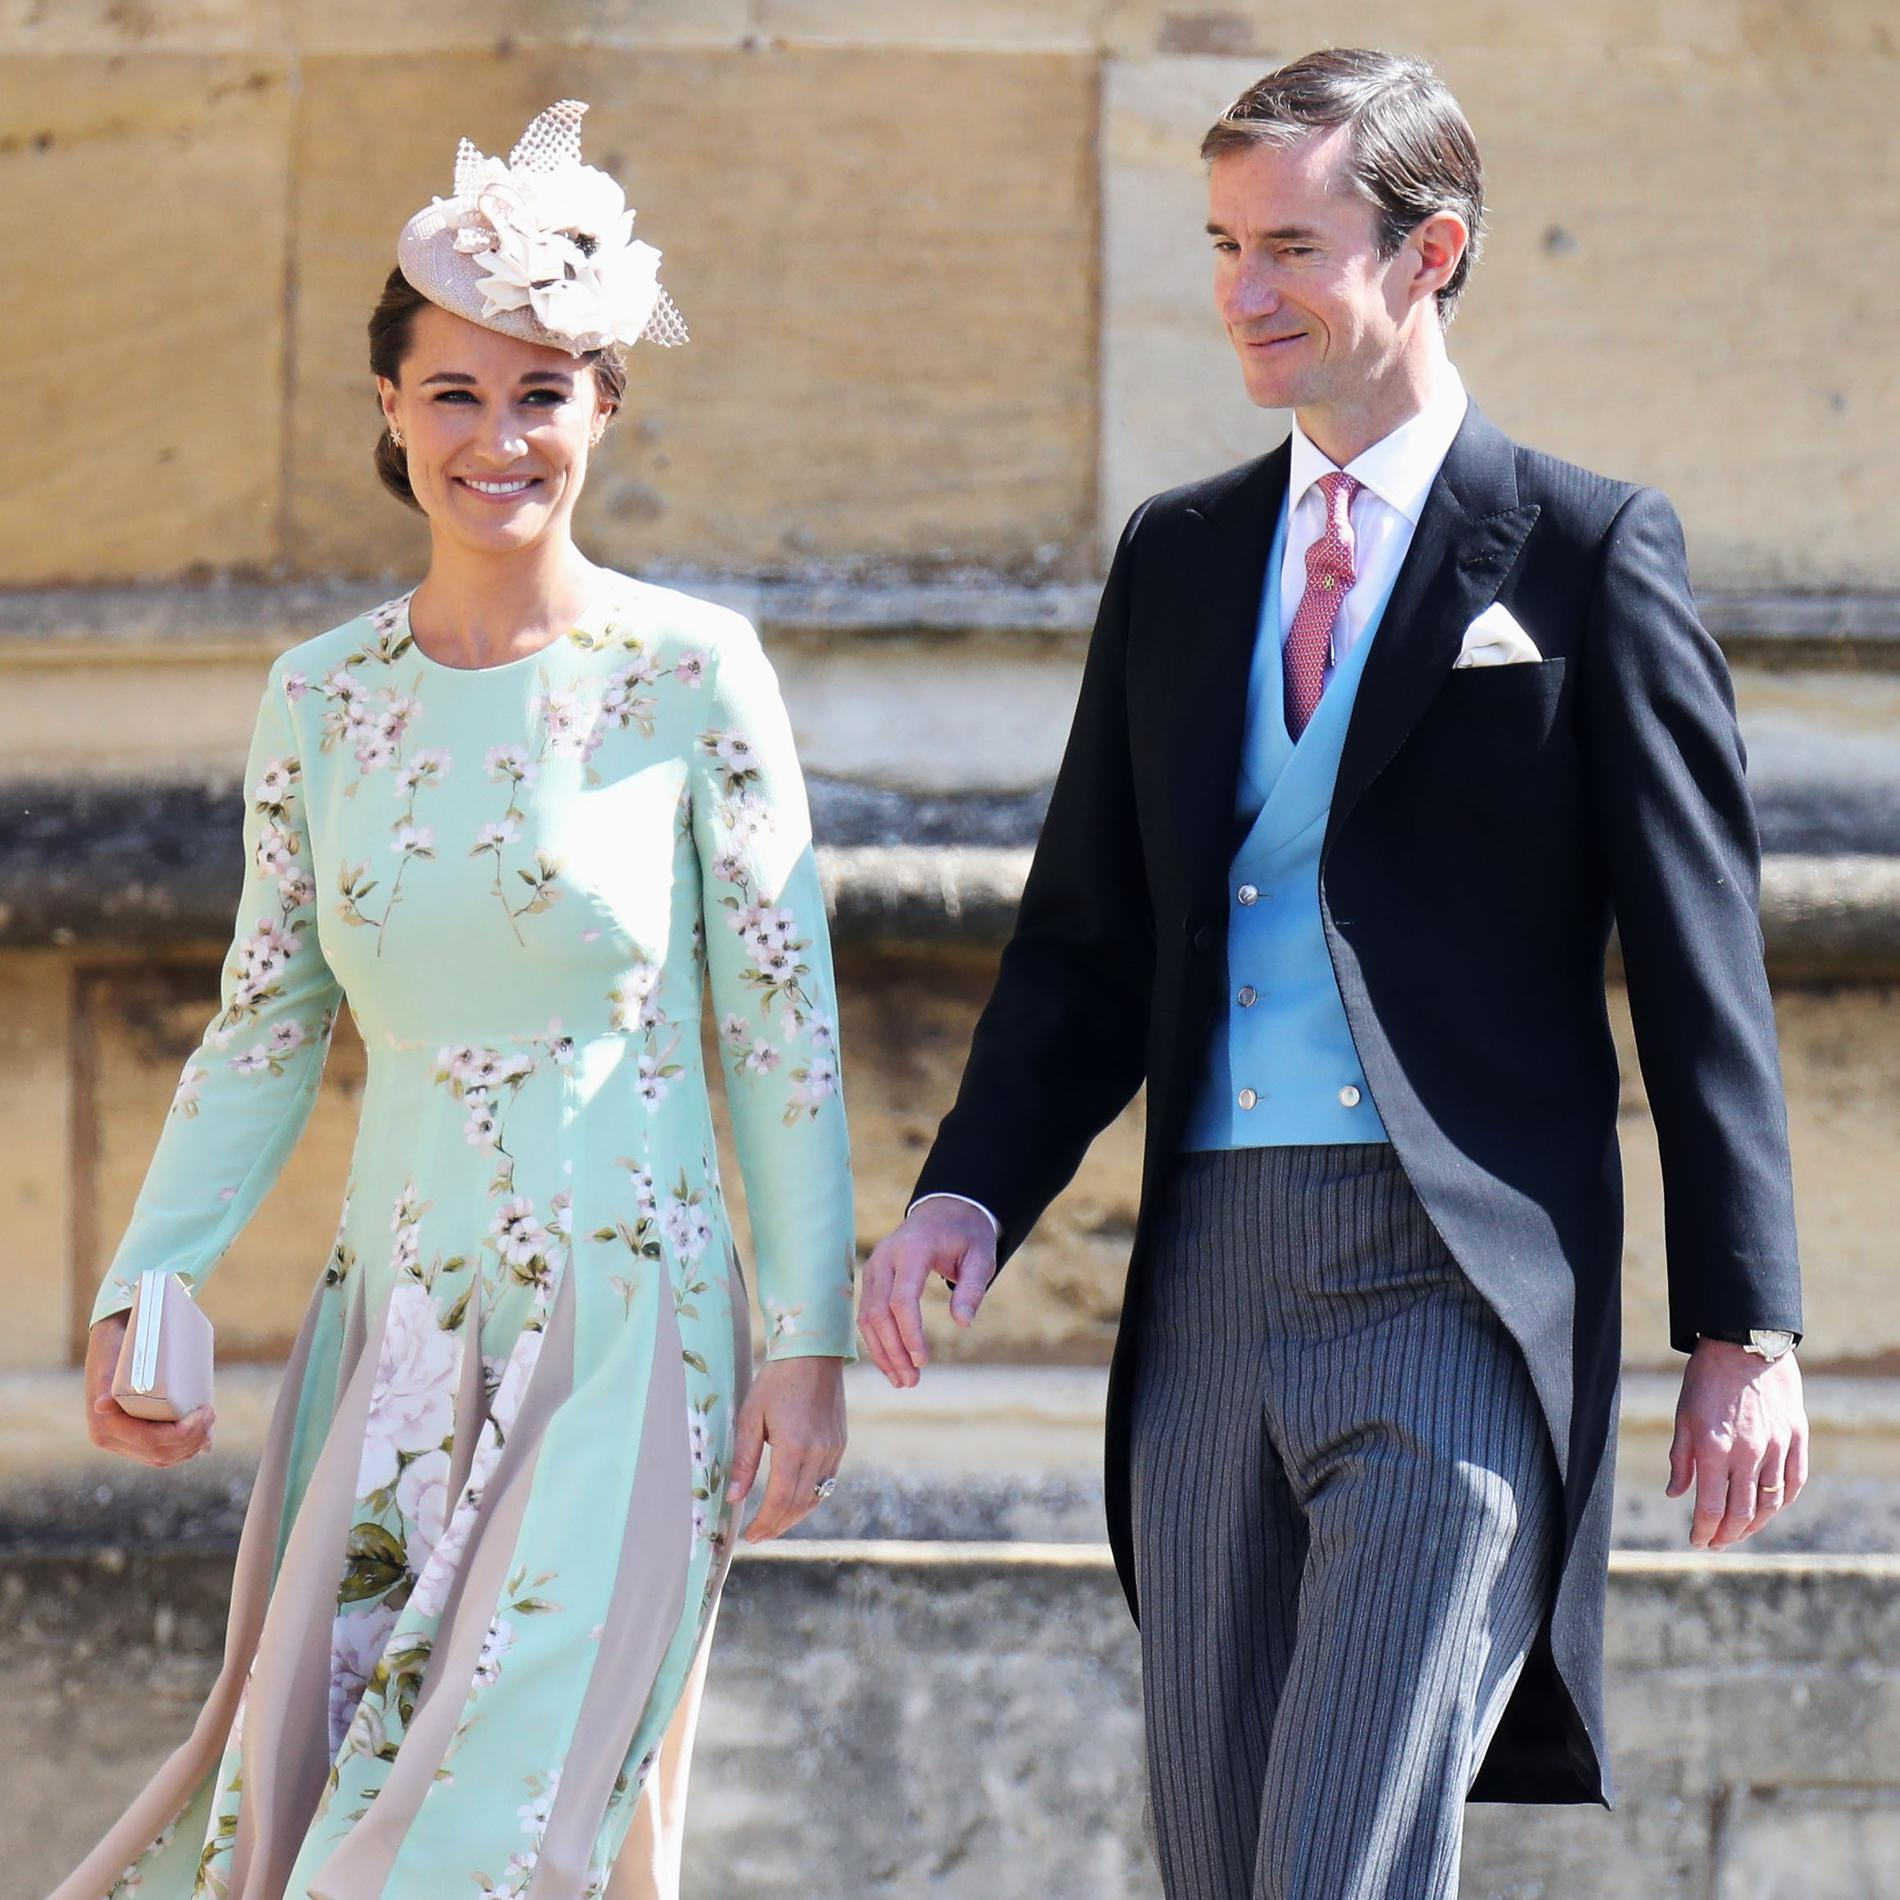 Match mode du mariage royal : Hollywood vs. noblesse britannique - Pippa Middleton